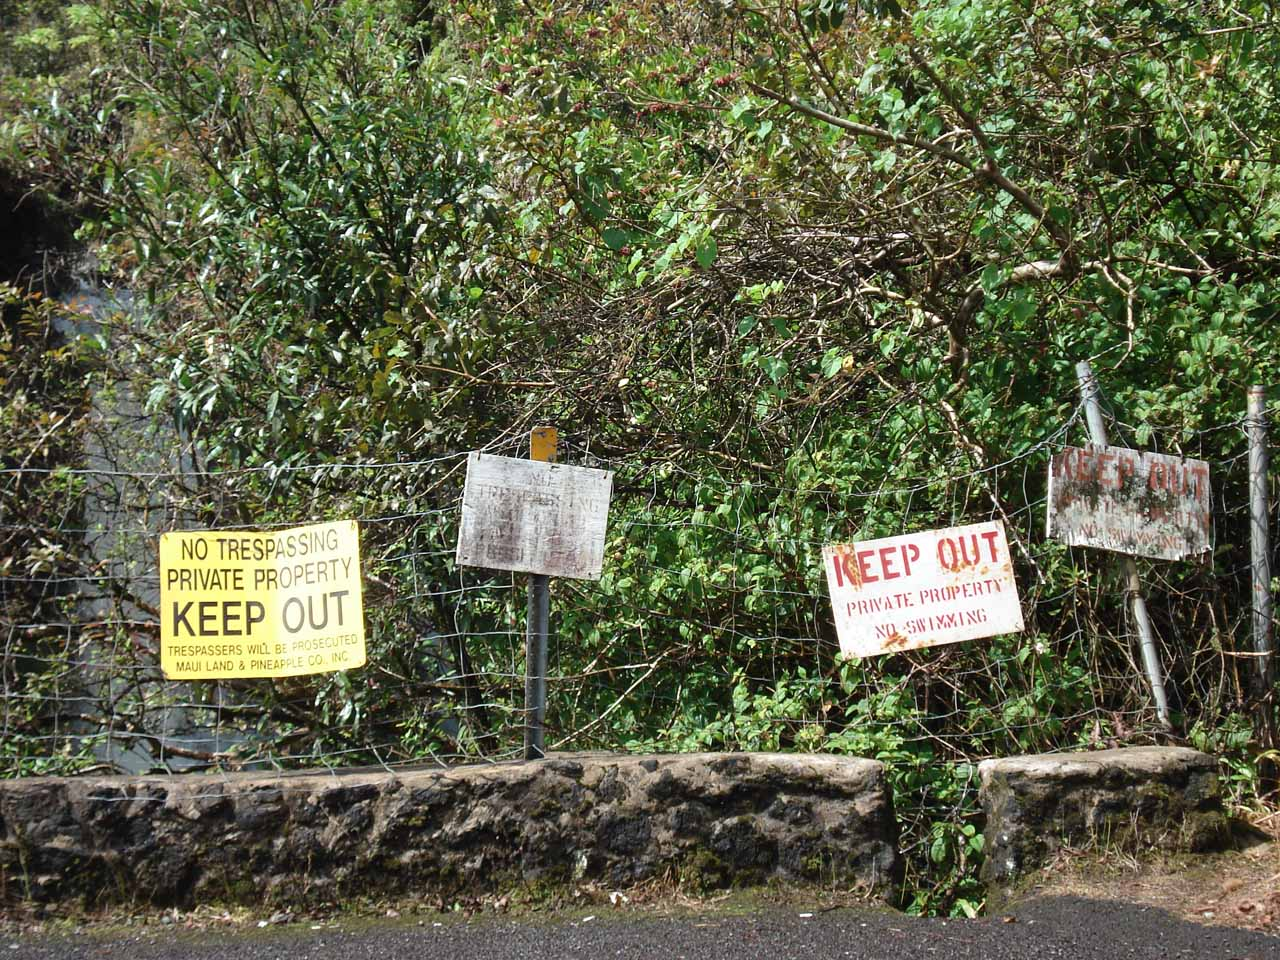 Lots of No Trespassing signs at Makapipi Falls